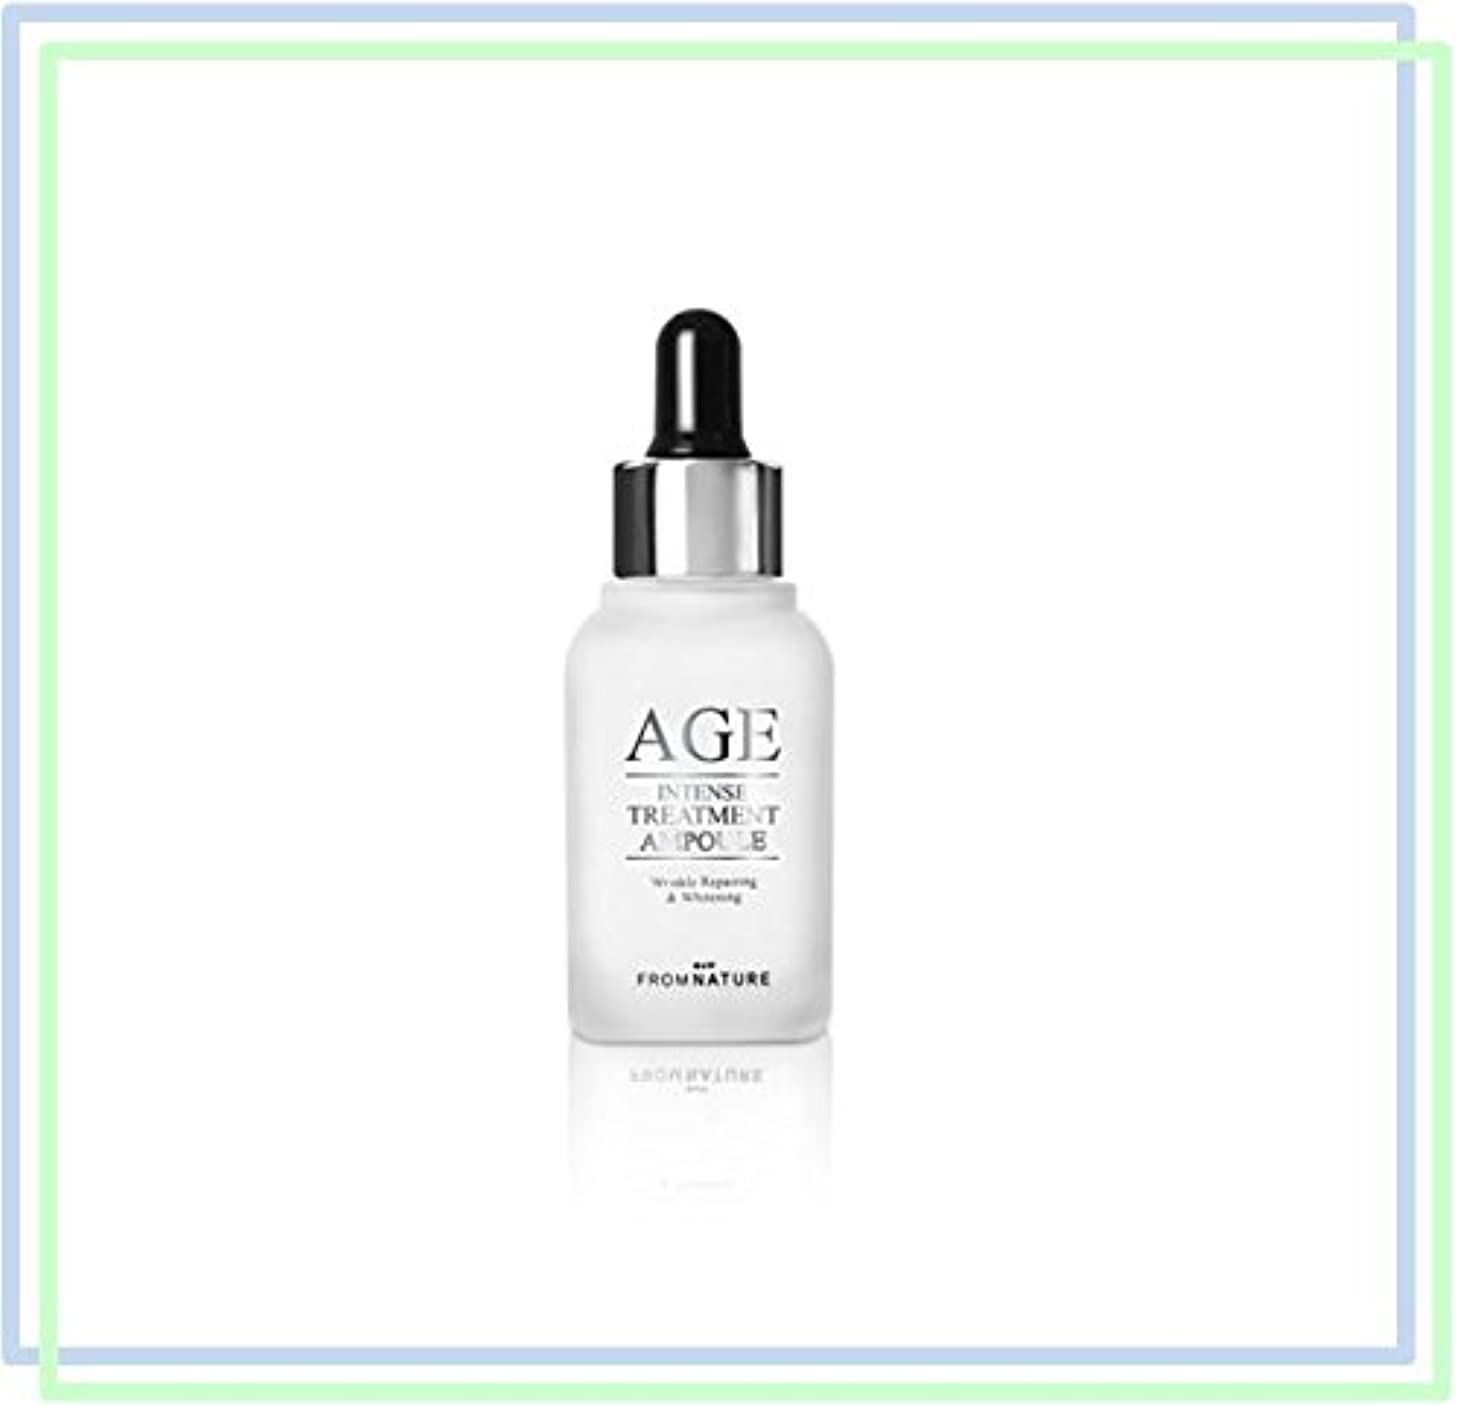 [FROMNATURE][フロムネイチャー] AGEトリートメントアンプル AGE TREATEMENT AMPOULE 72.6%